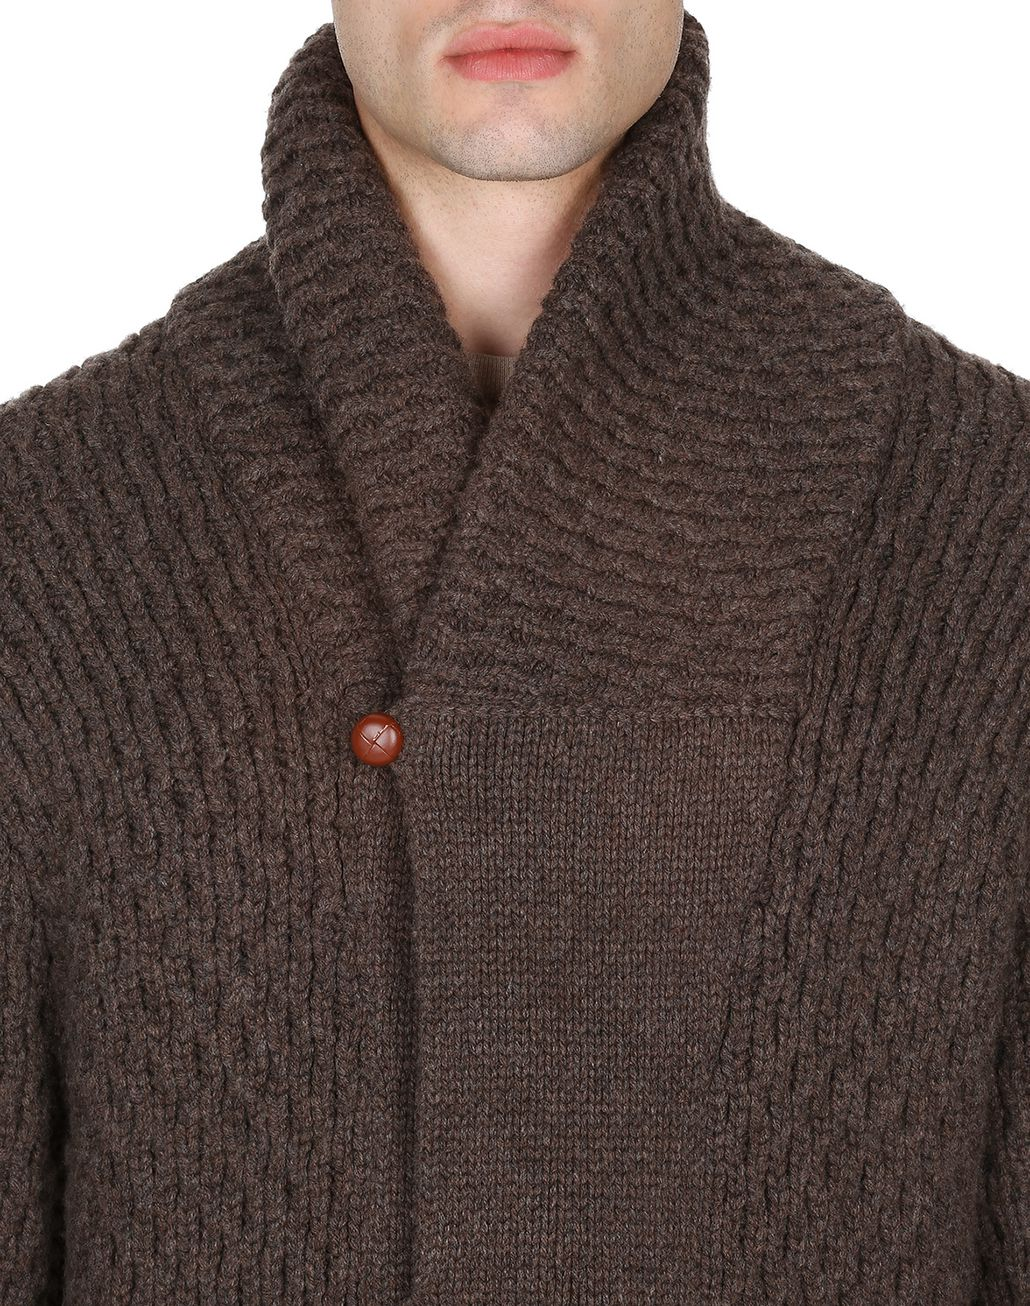 BRIONI Brown Knitwear Jacket Knitwear [*** pickupInStoreShippingNotGuaranteed_info ***] e